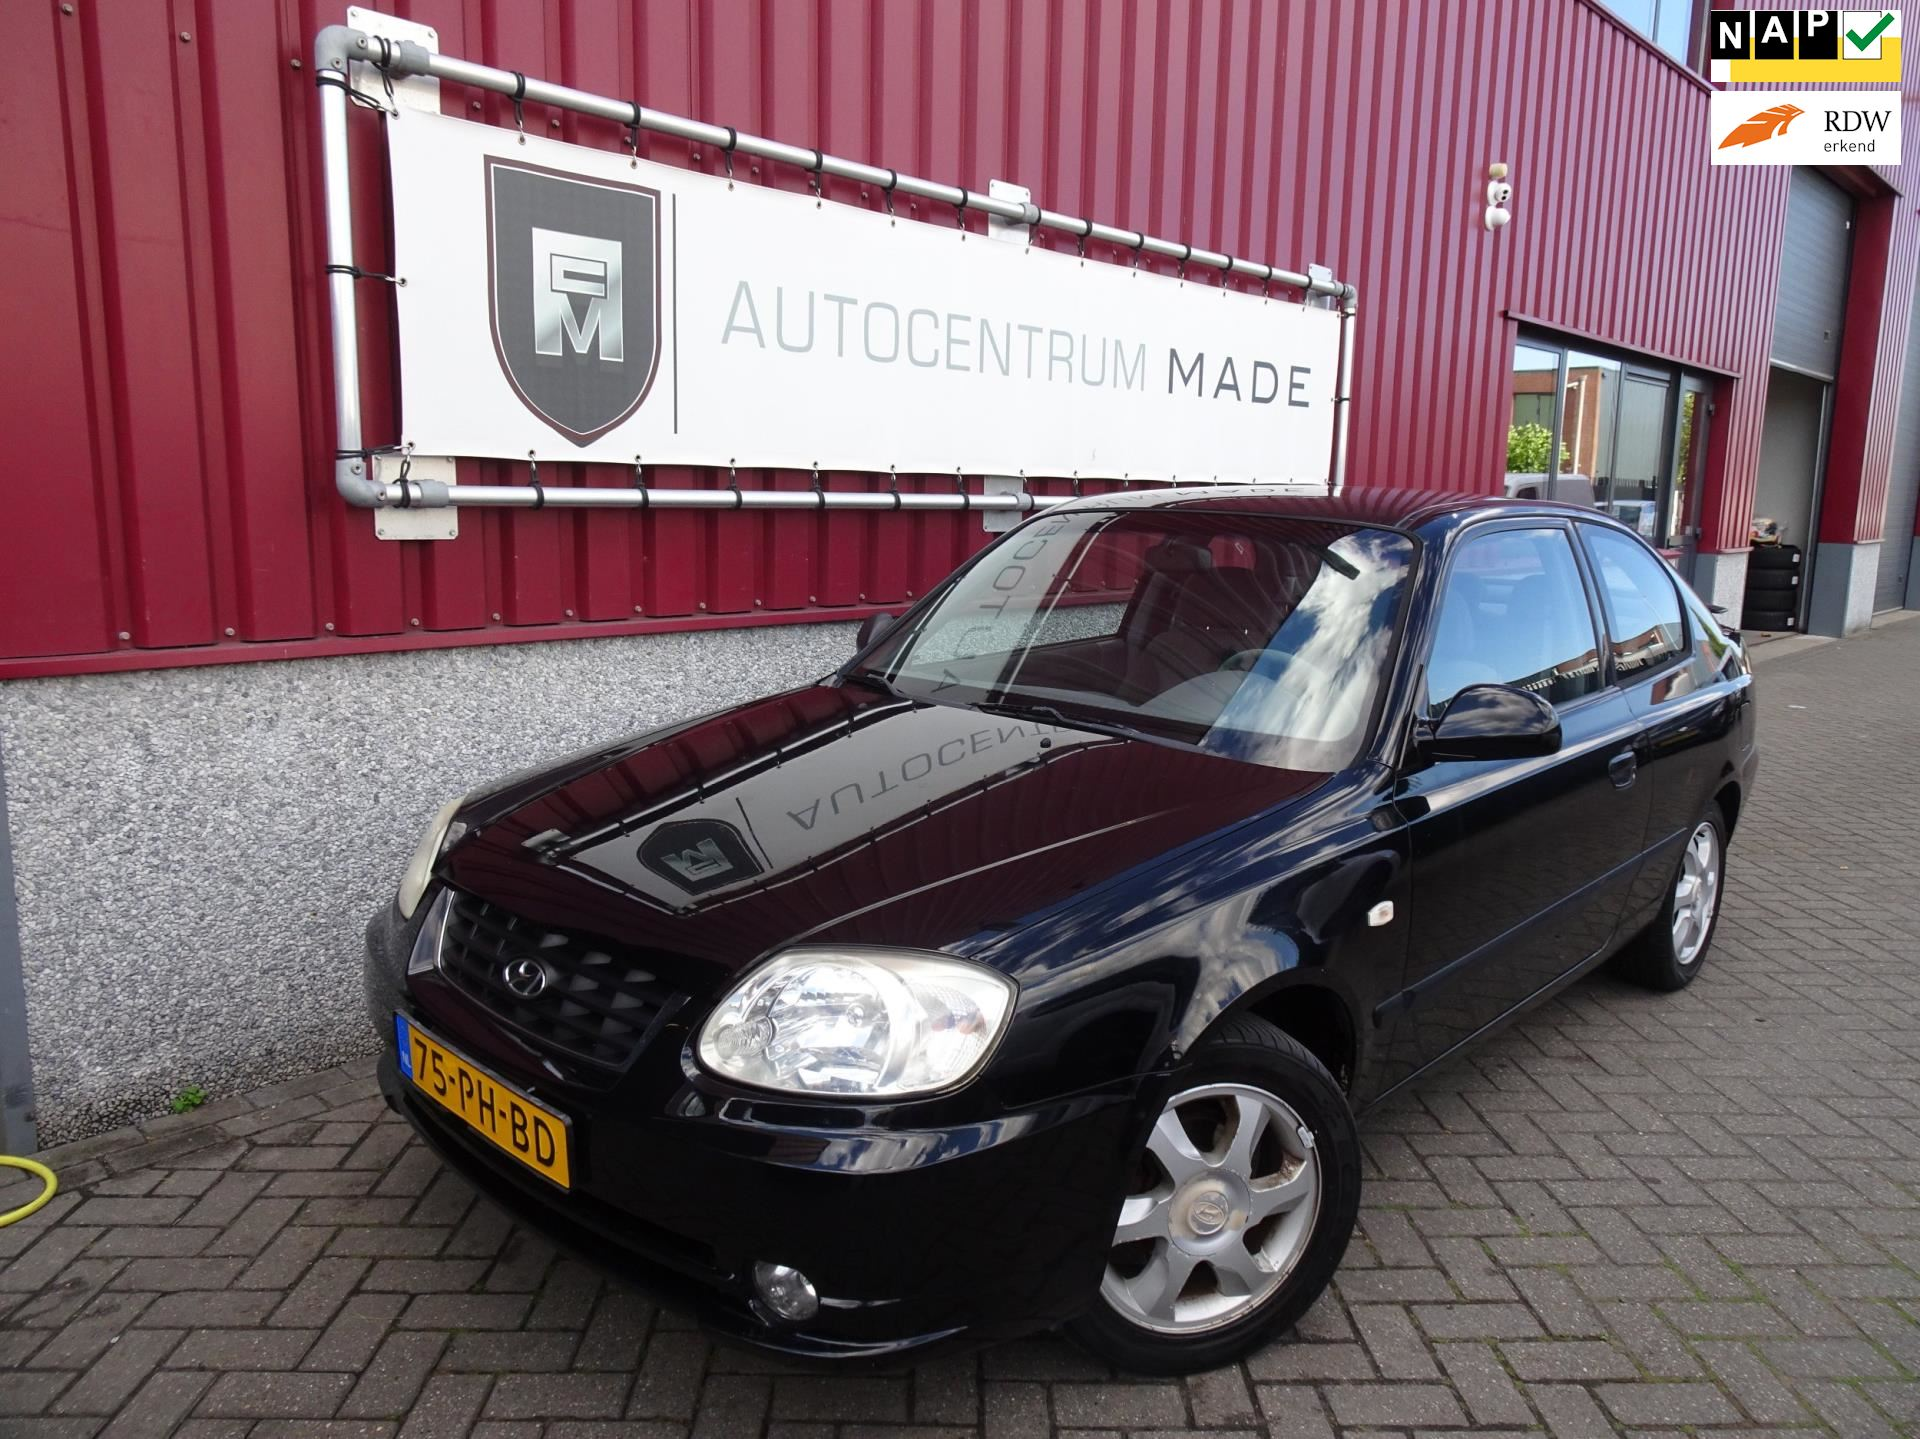 Hyundai Accent occasion - Auto Centrum Made